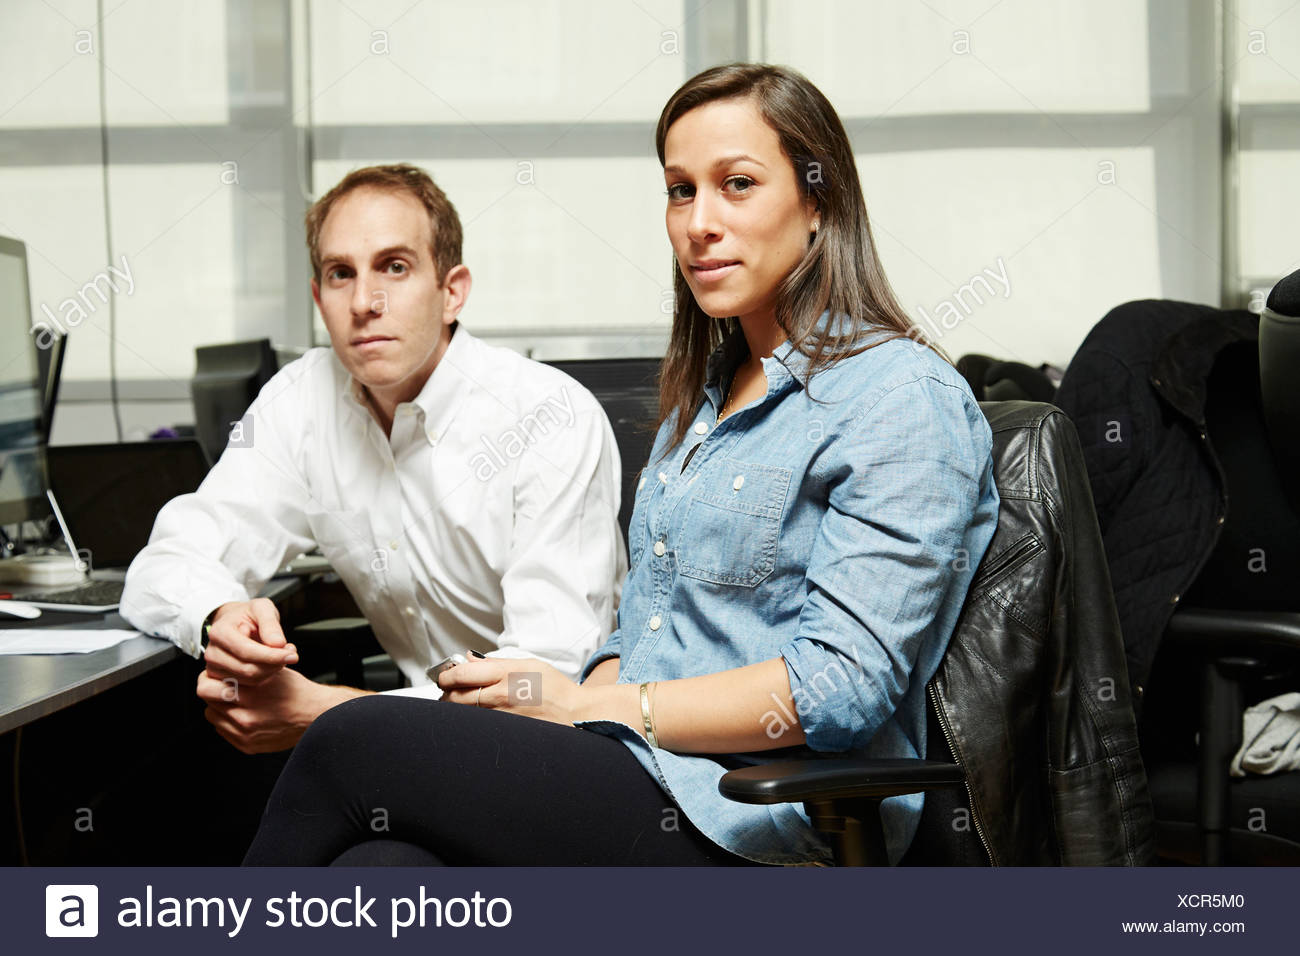 Portrait of colleagues in office - Stock Image